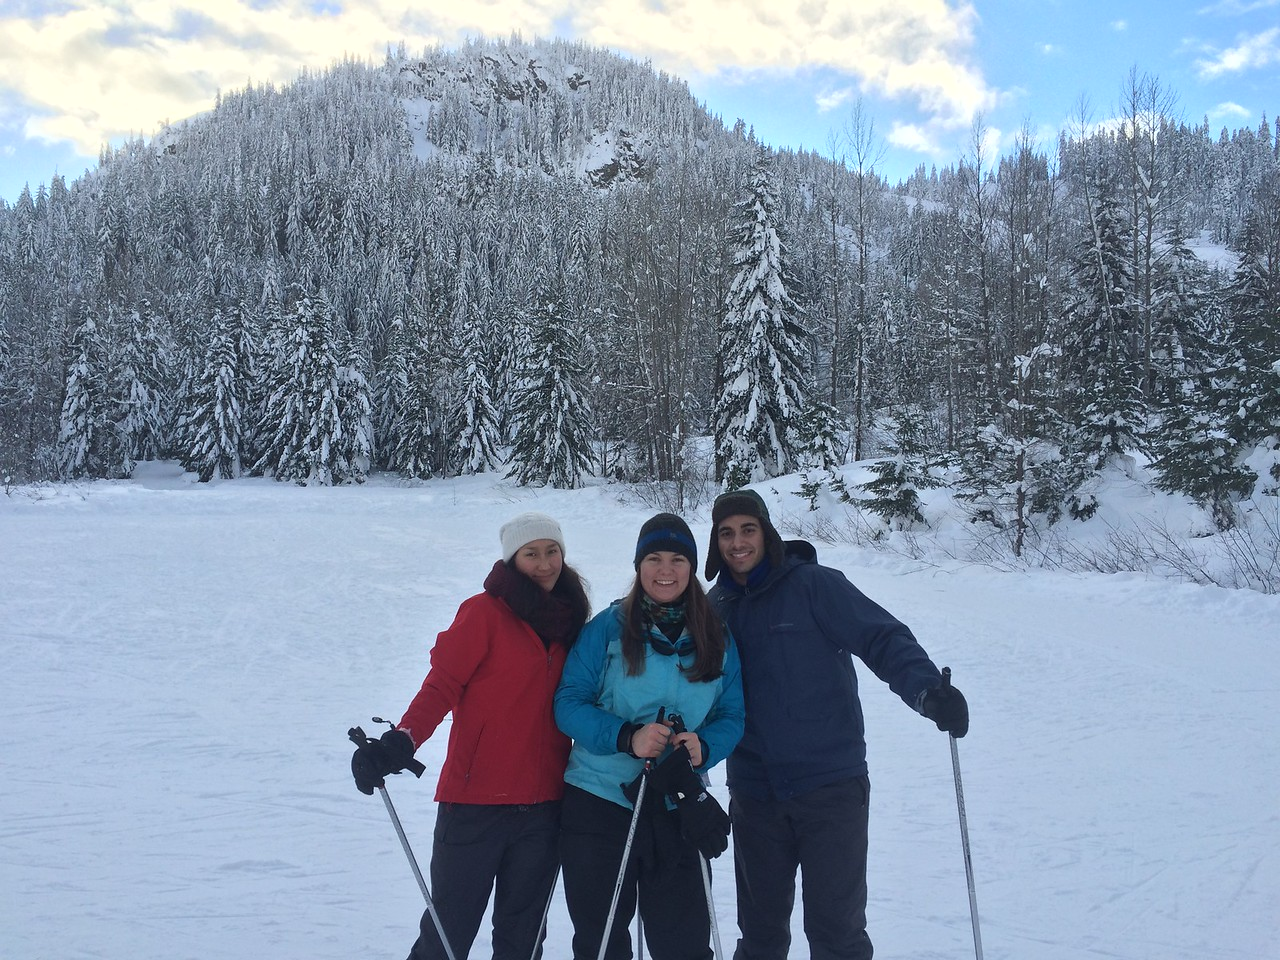 OWLs cross-country skiing at Snoqualmie